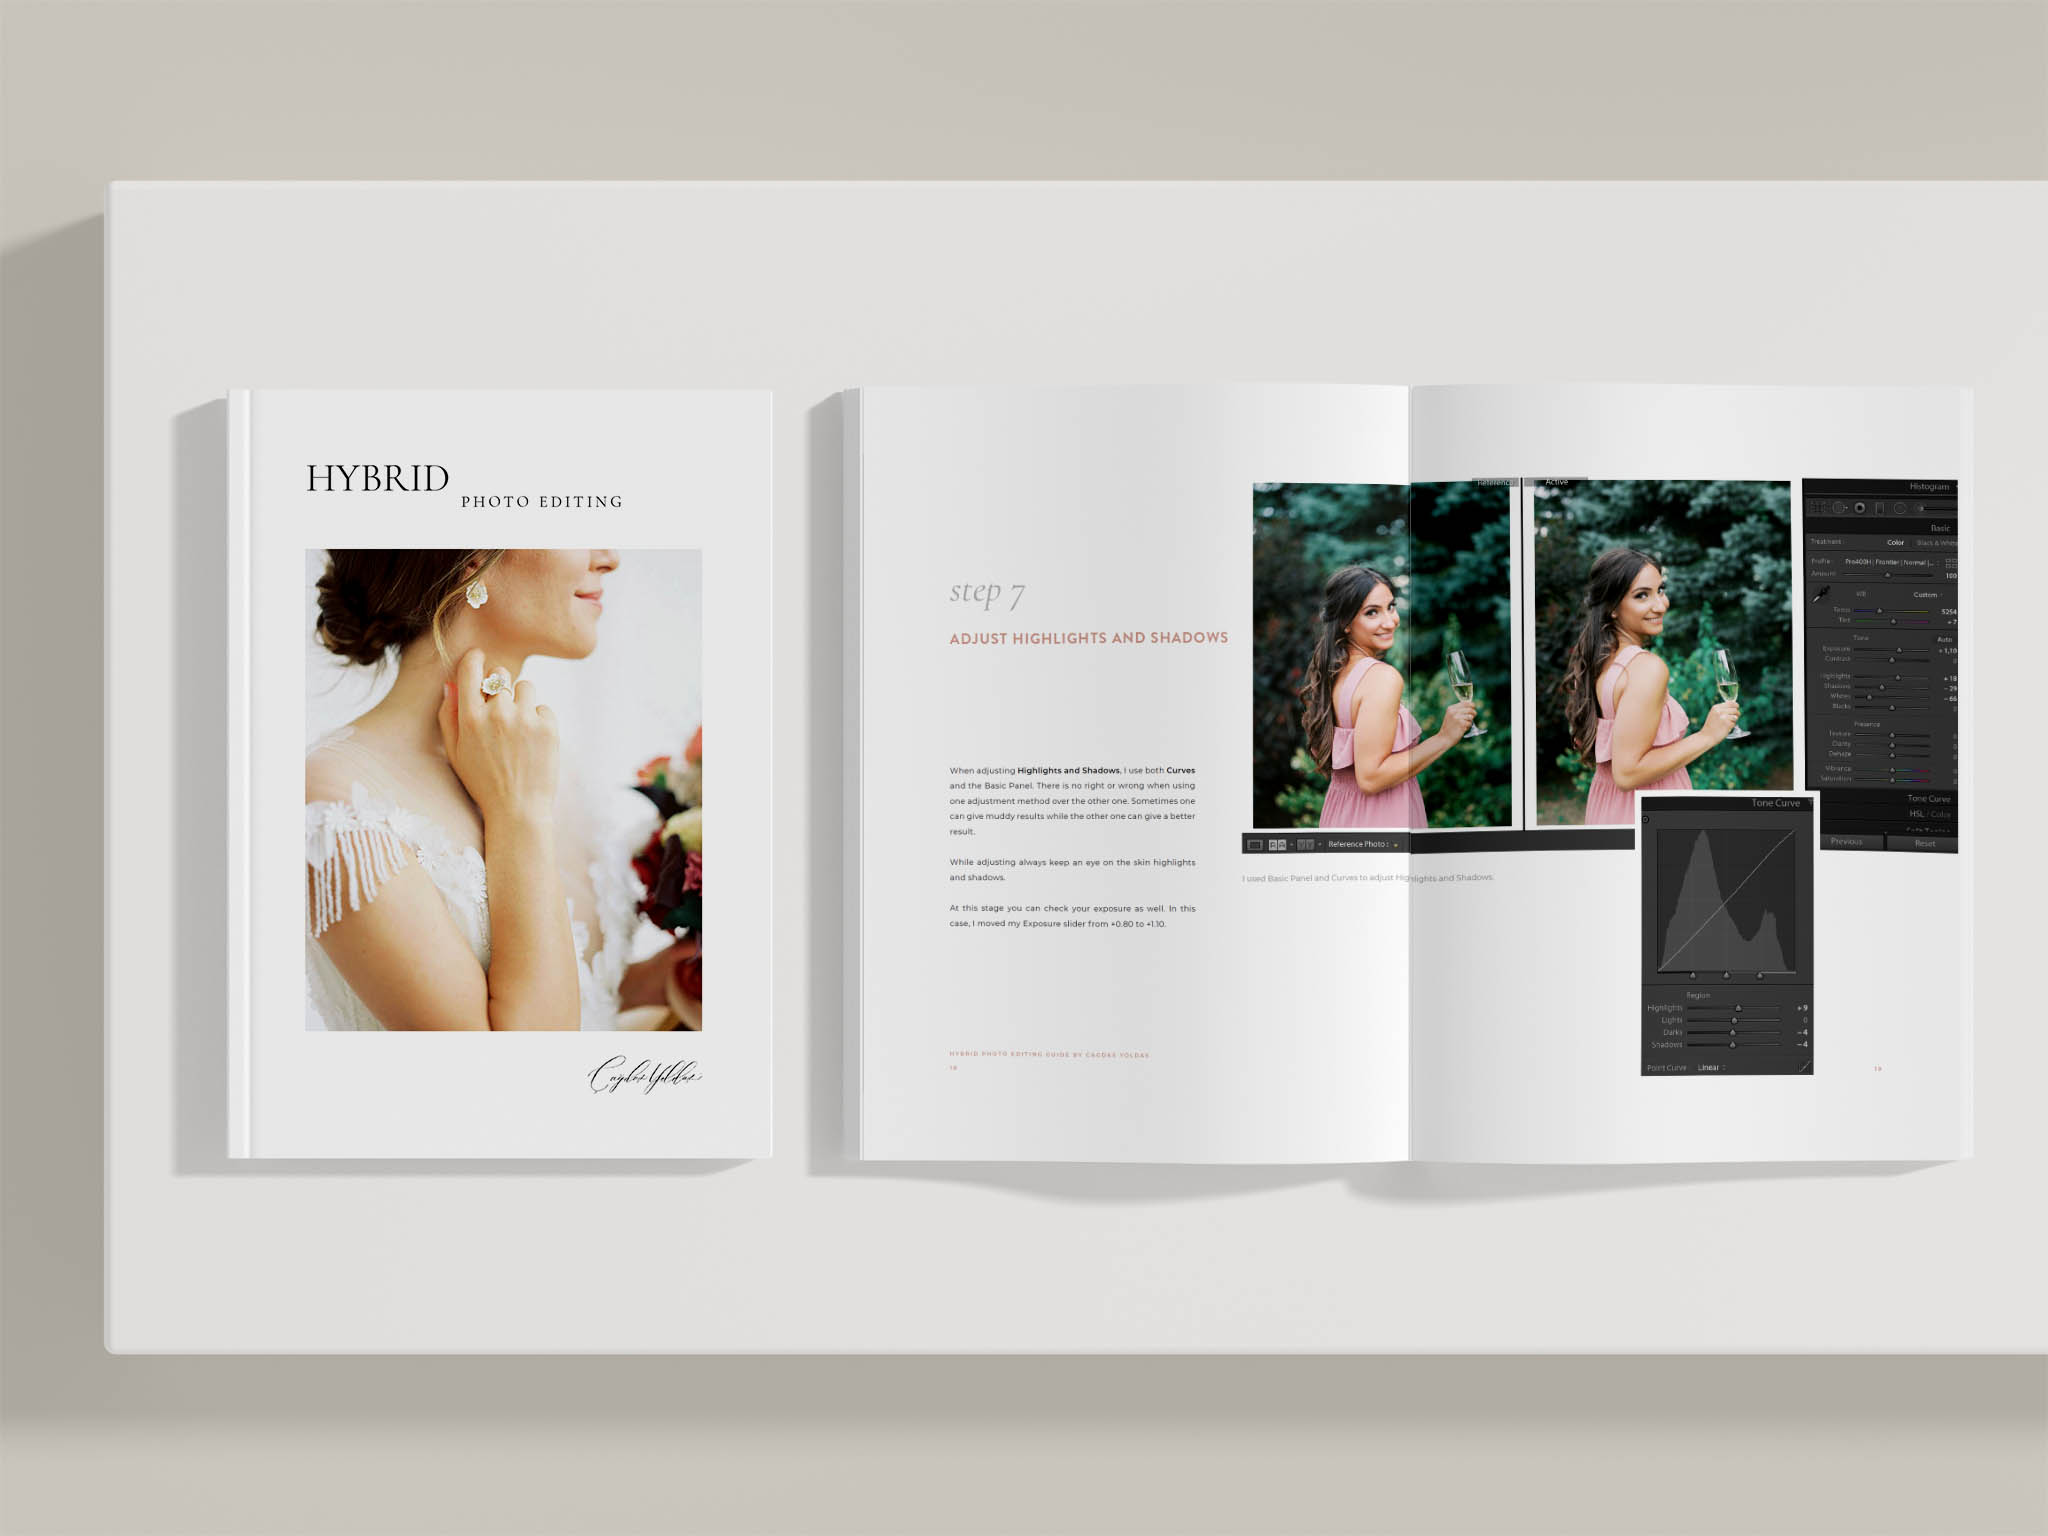 Hybrid Photo Editing Guide for Photographers